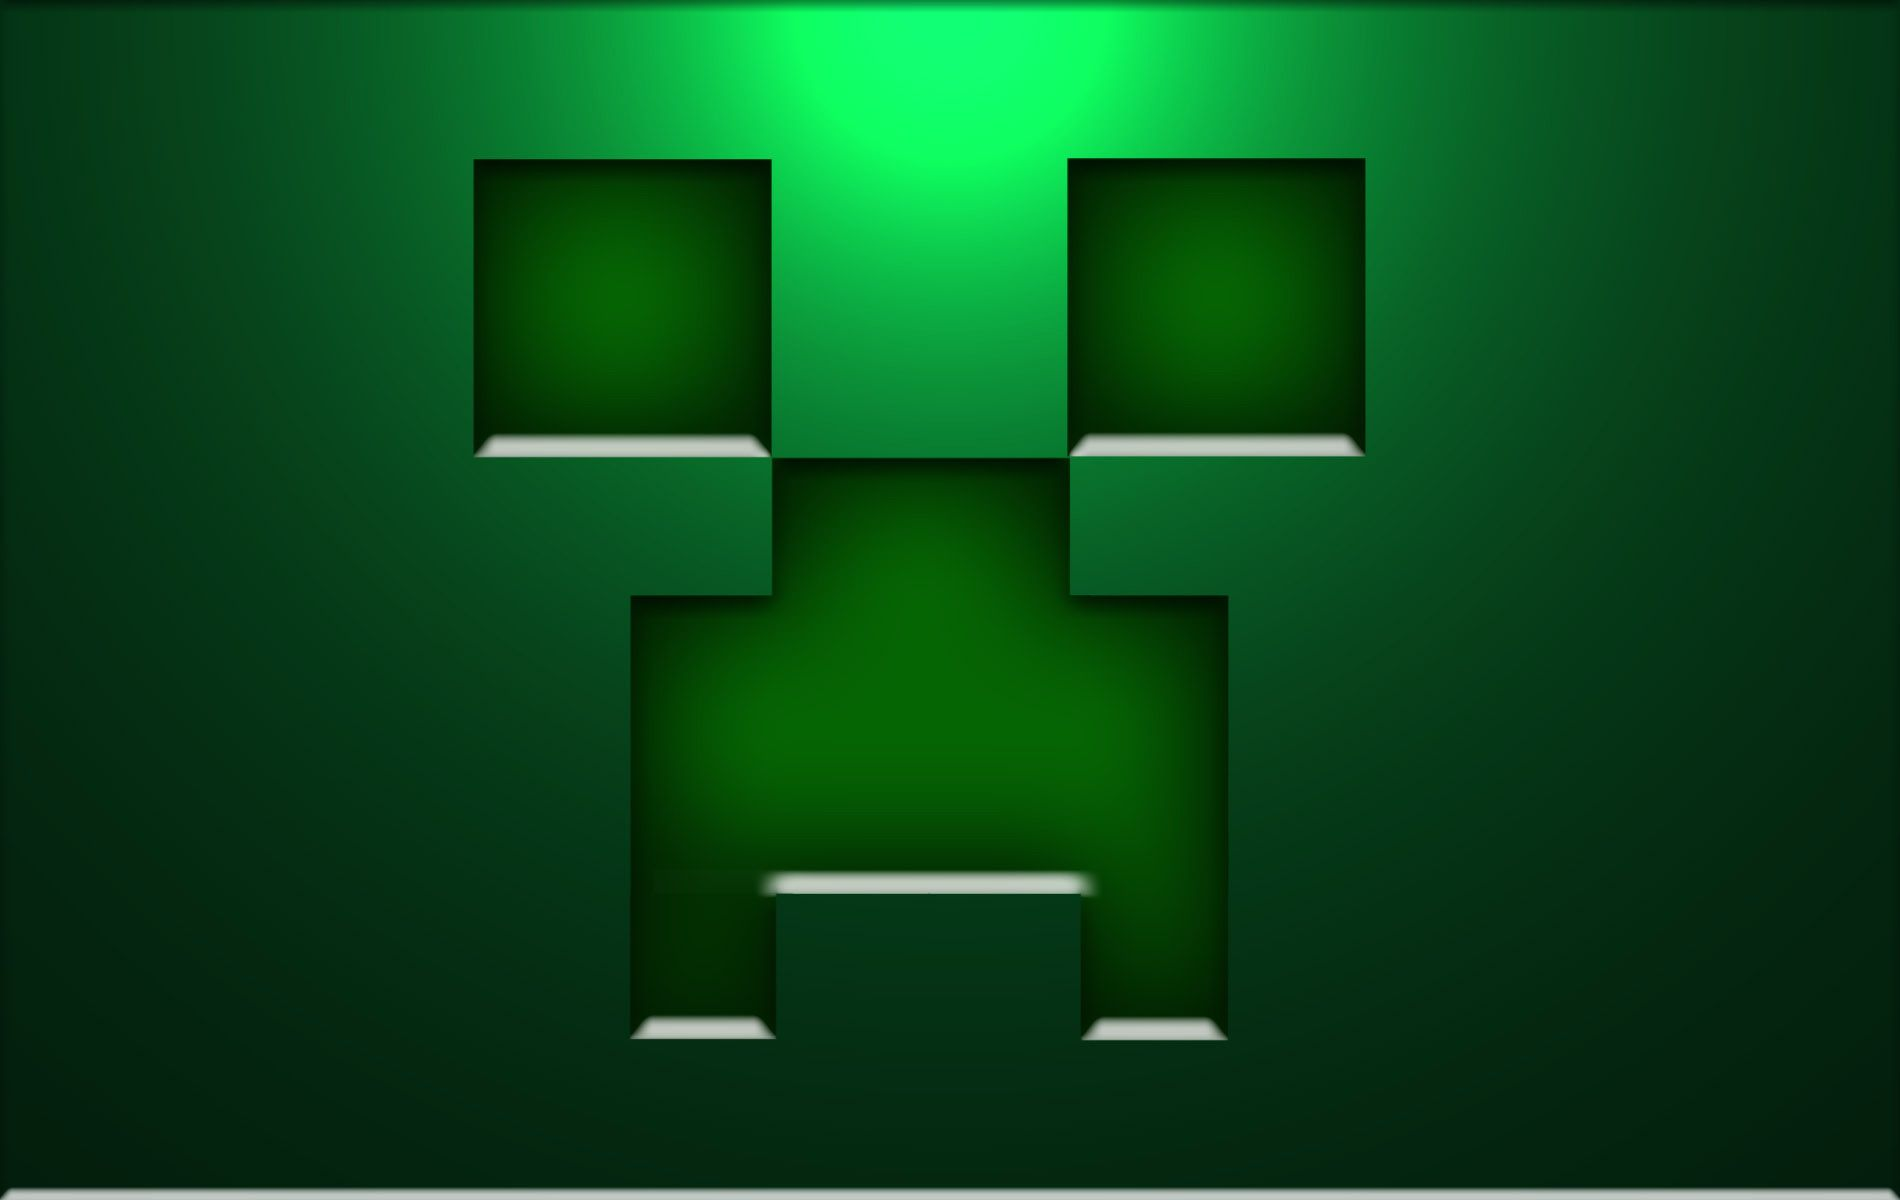 Minecraft Mob Face Creeper Wallpaper 1632 Tanukinosippo Com Minecraft Wallpaper Cool Backgrounds Wallpapers Creepers